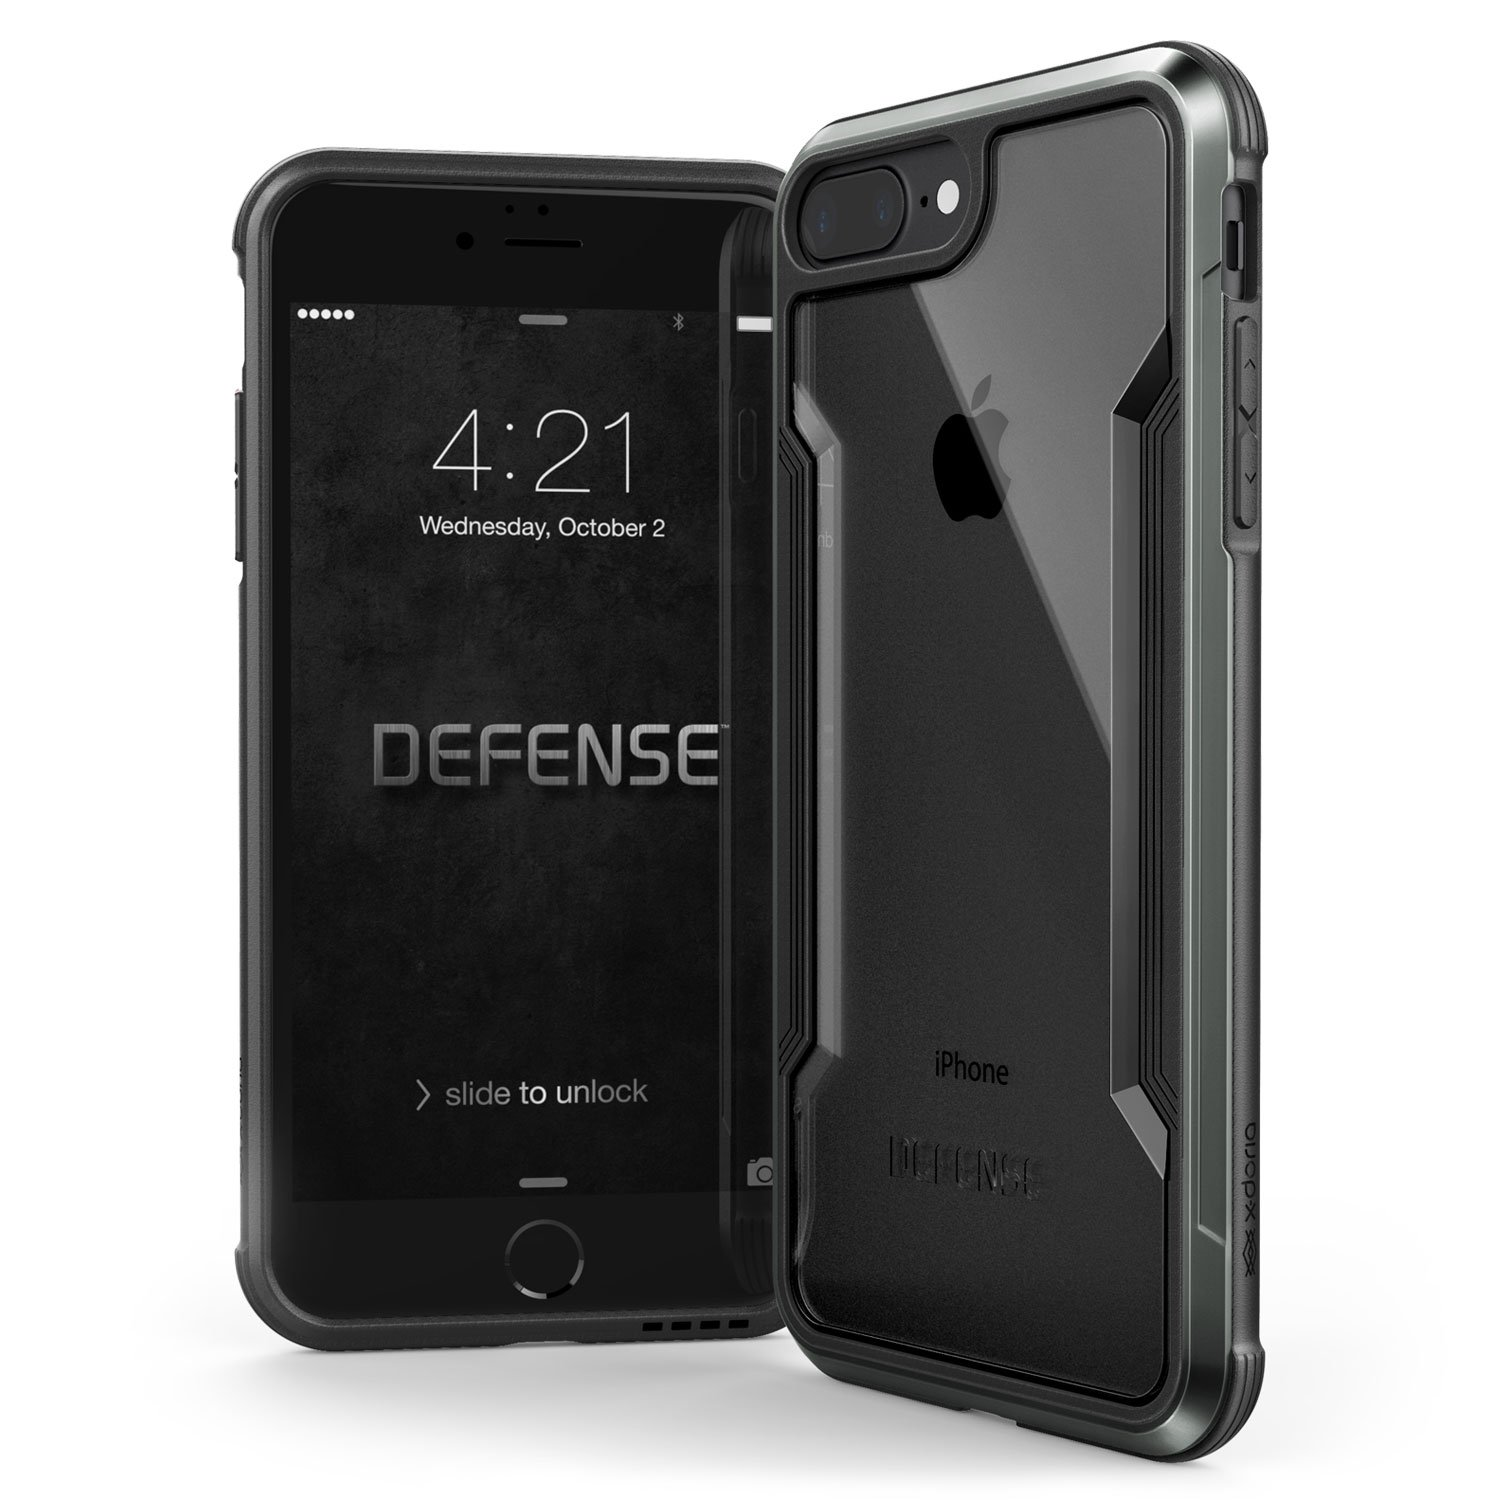 iPhone 8 Plus & iPhone 7 Plus Case, X-Doria Defense Shield - Military Grade Drop Tested, Anodized Aluminum, TPU, and Polycarbonate Protective Case for ...